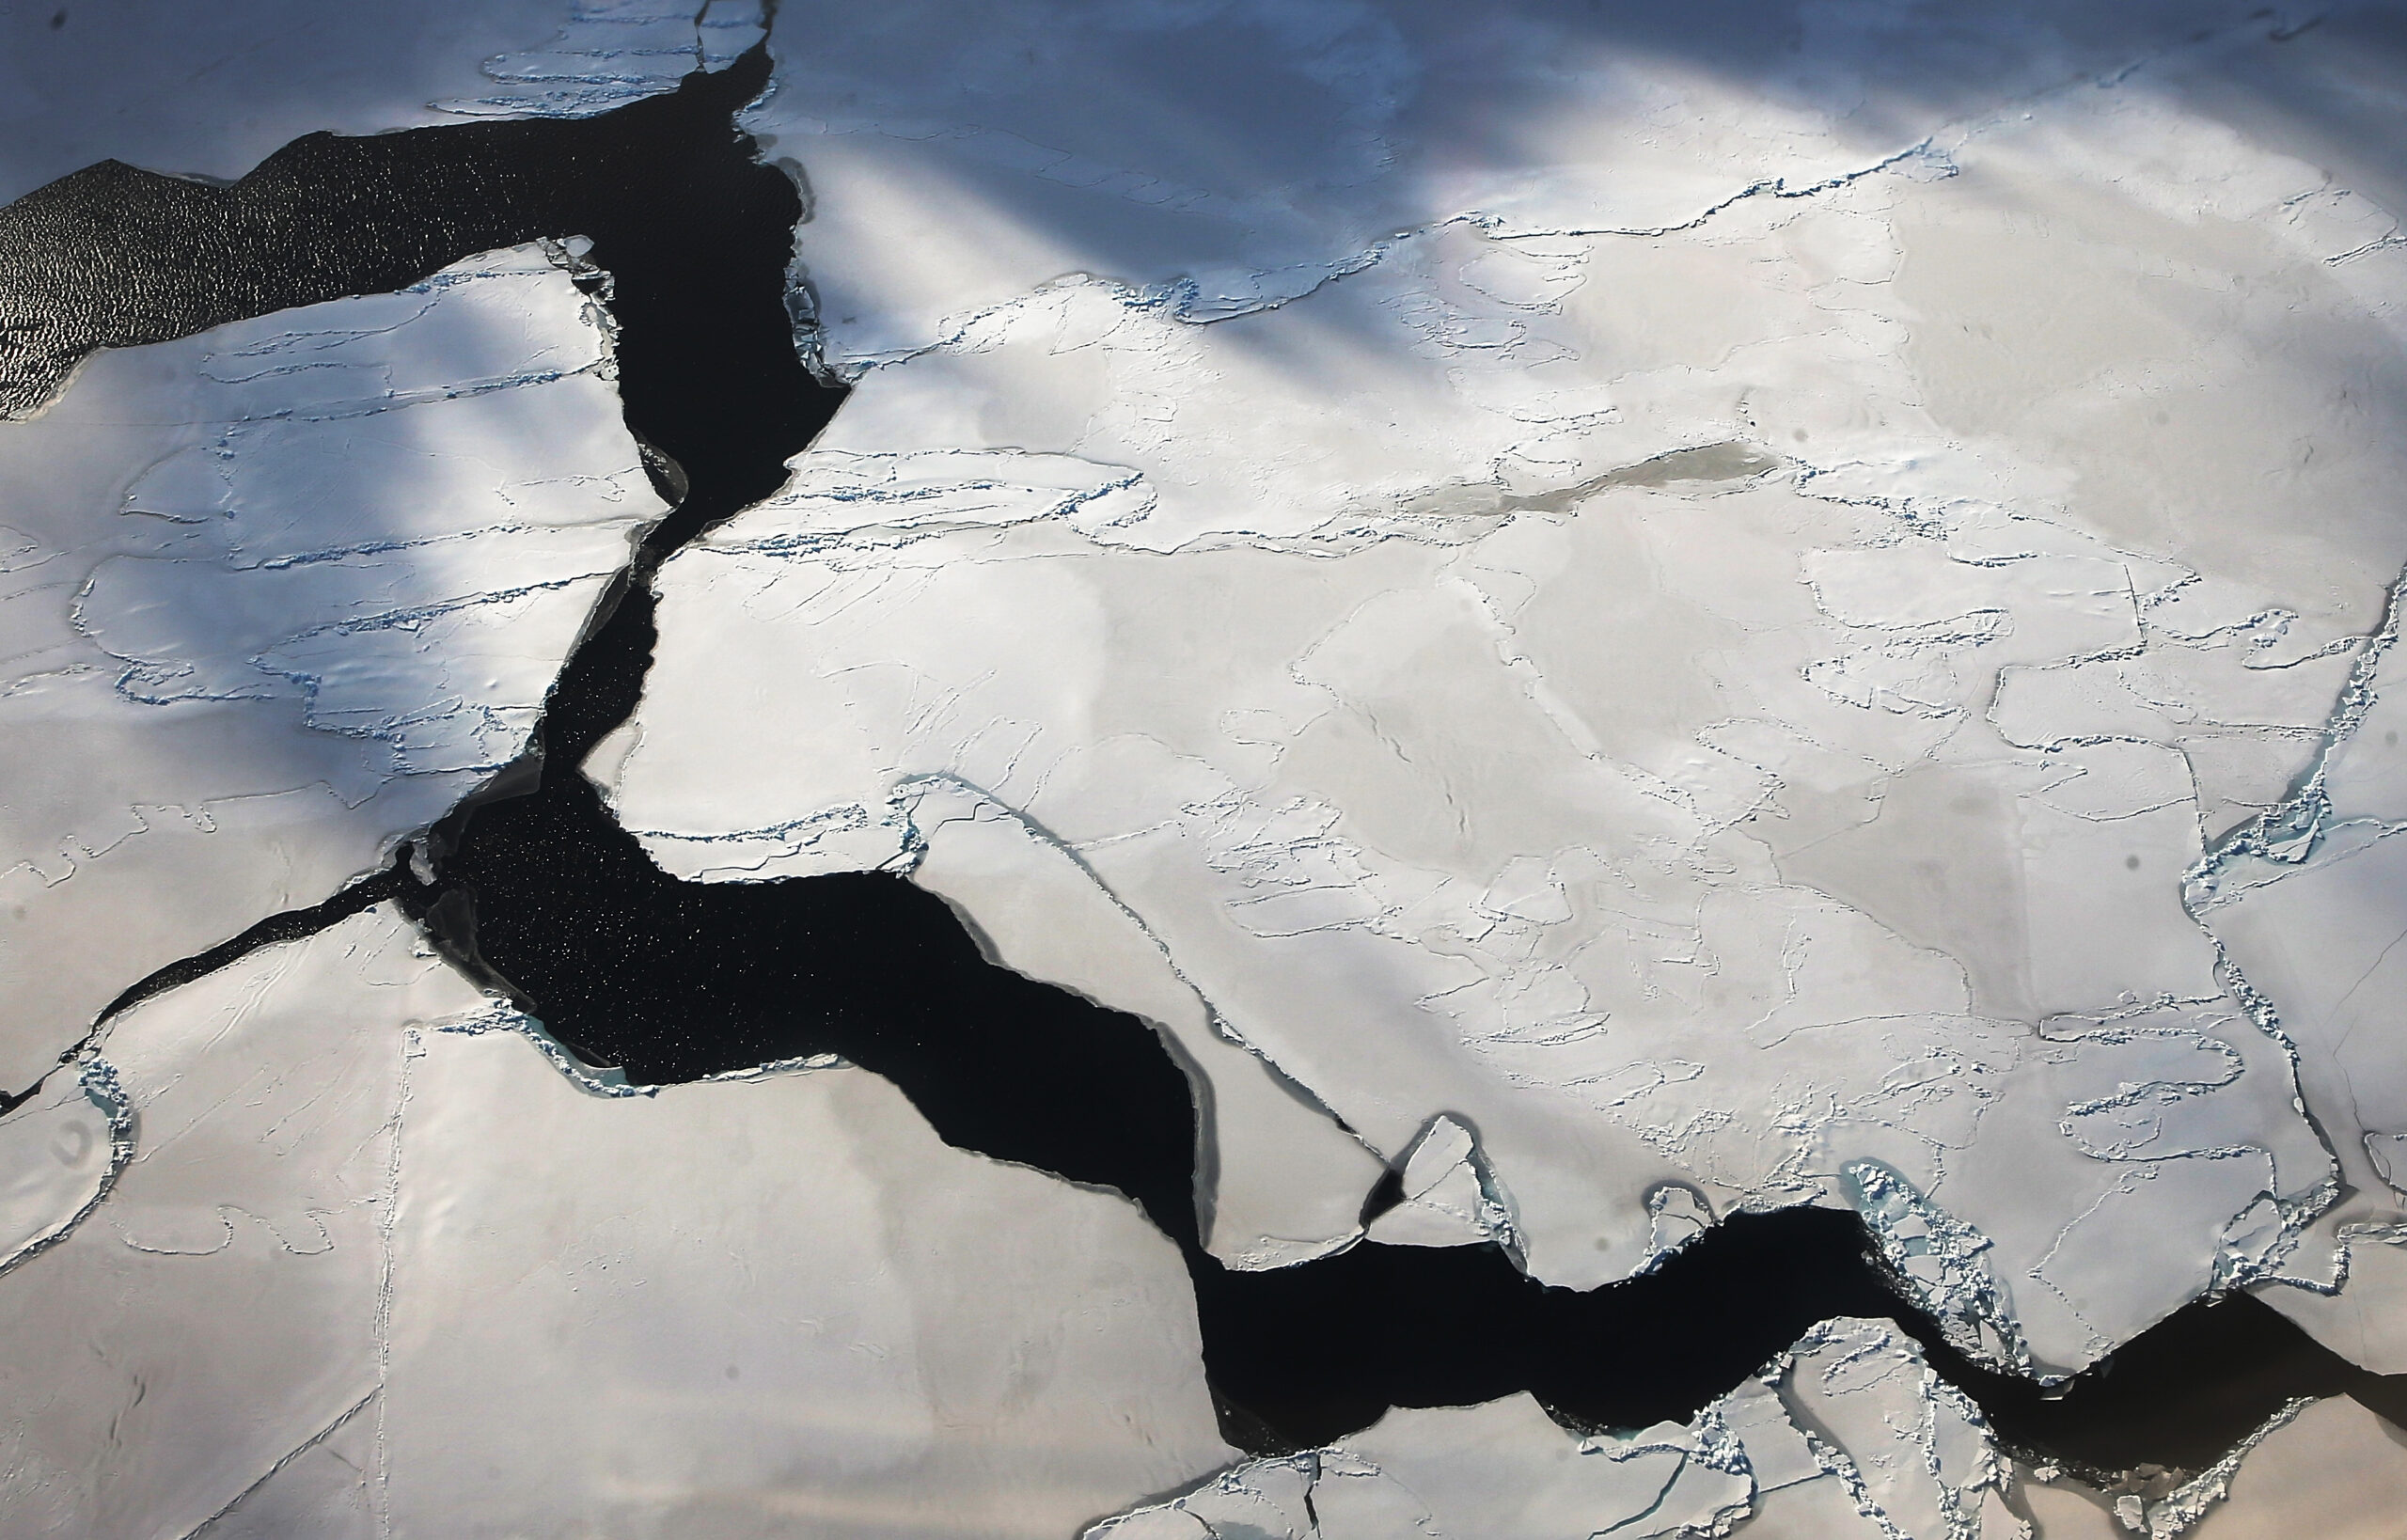 Ice floats near the coast of West Antarctica viewed from a window of a NASA Operation IceBridge airplane on Oct. 27, 2016 in-flight over Antarctica. Credit: Mario Tama/Getty Images